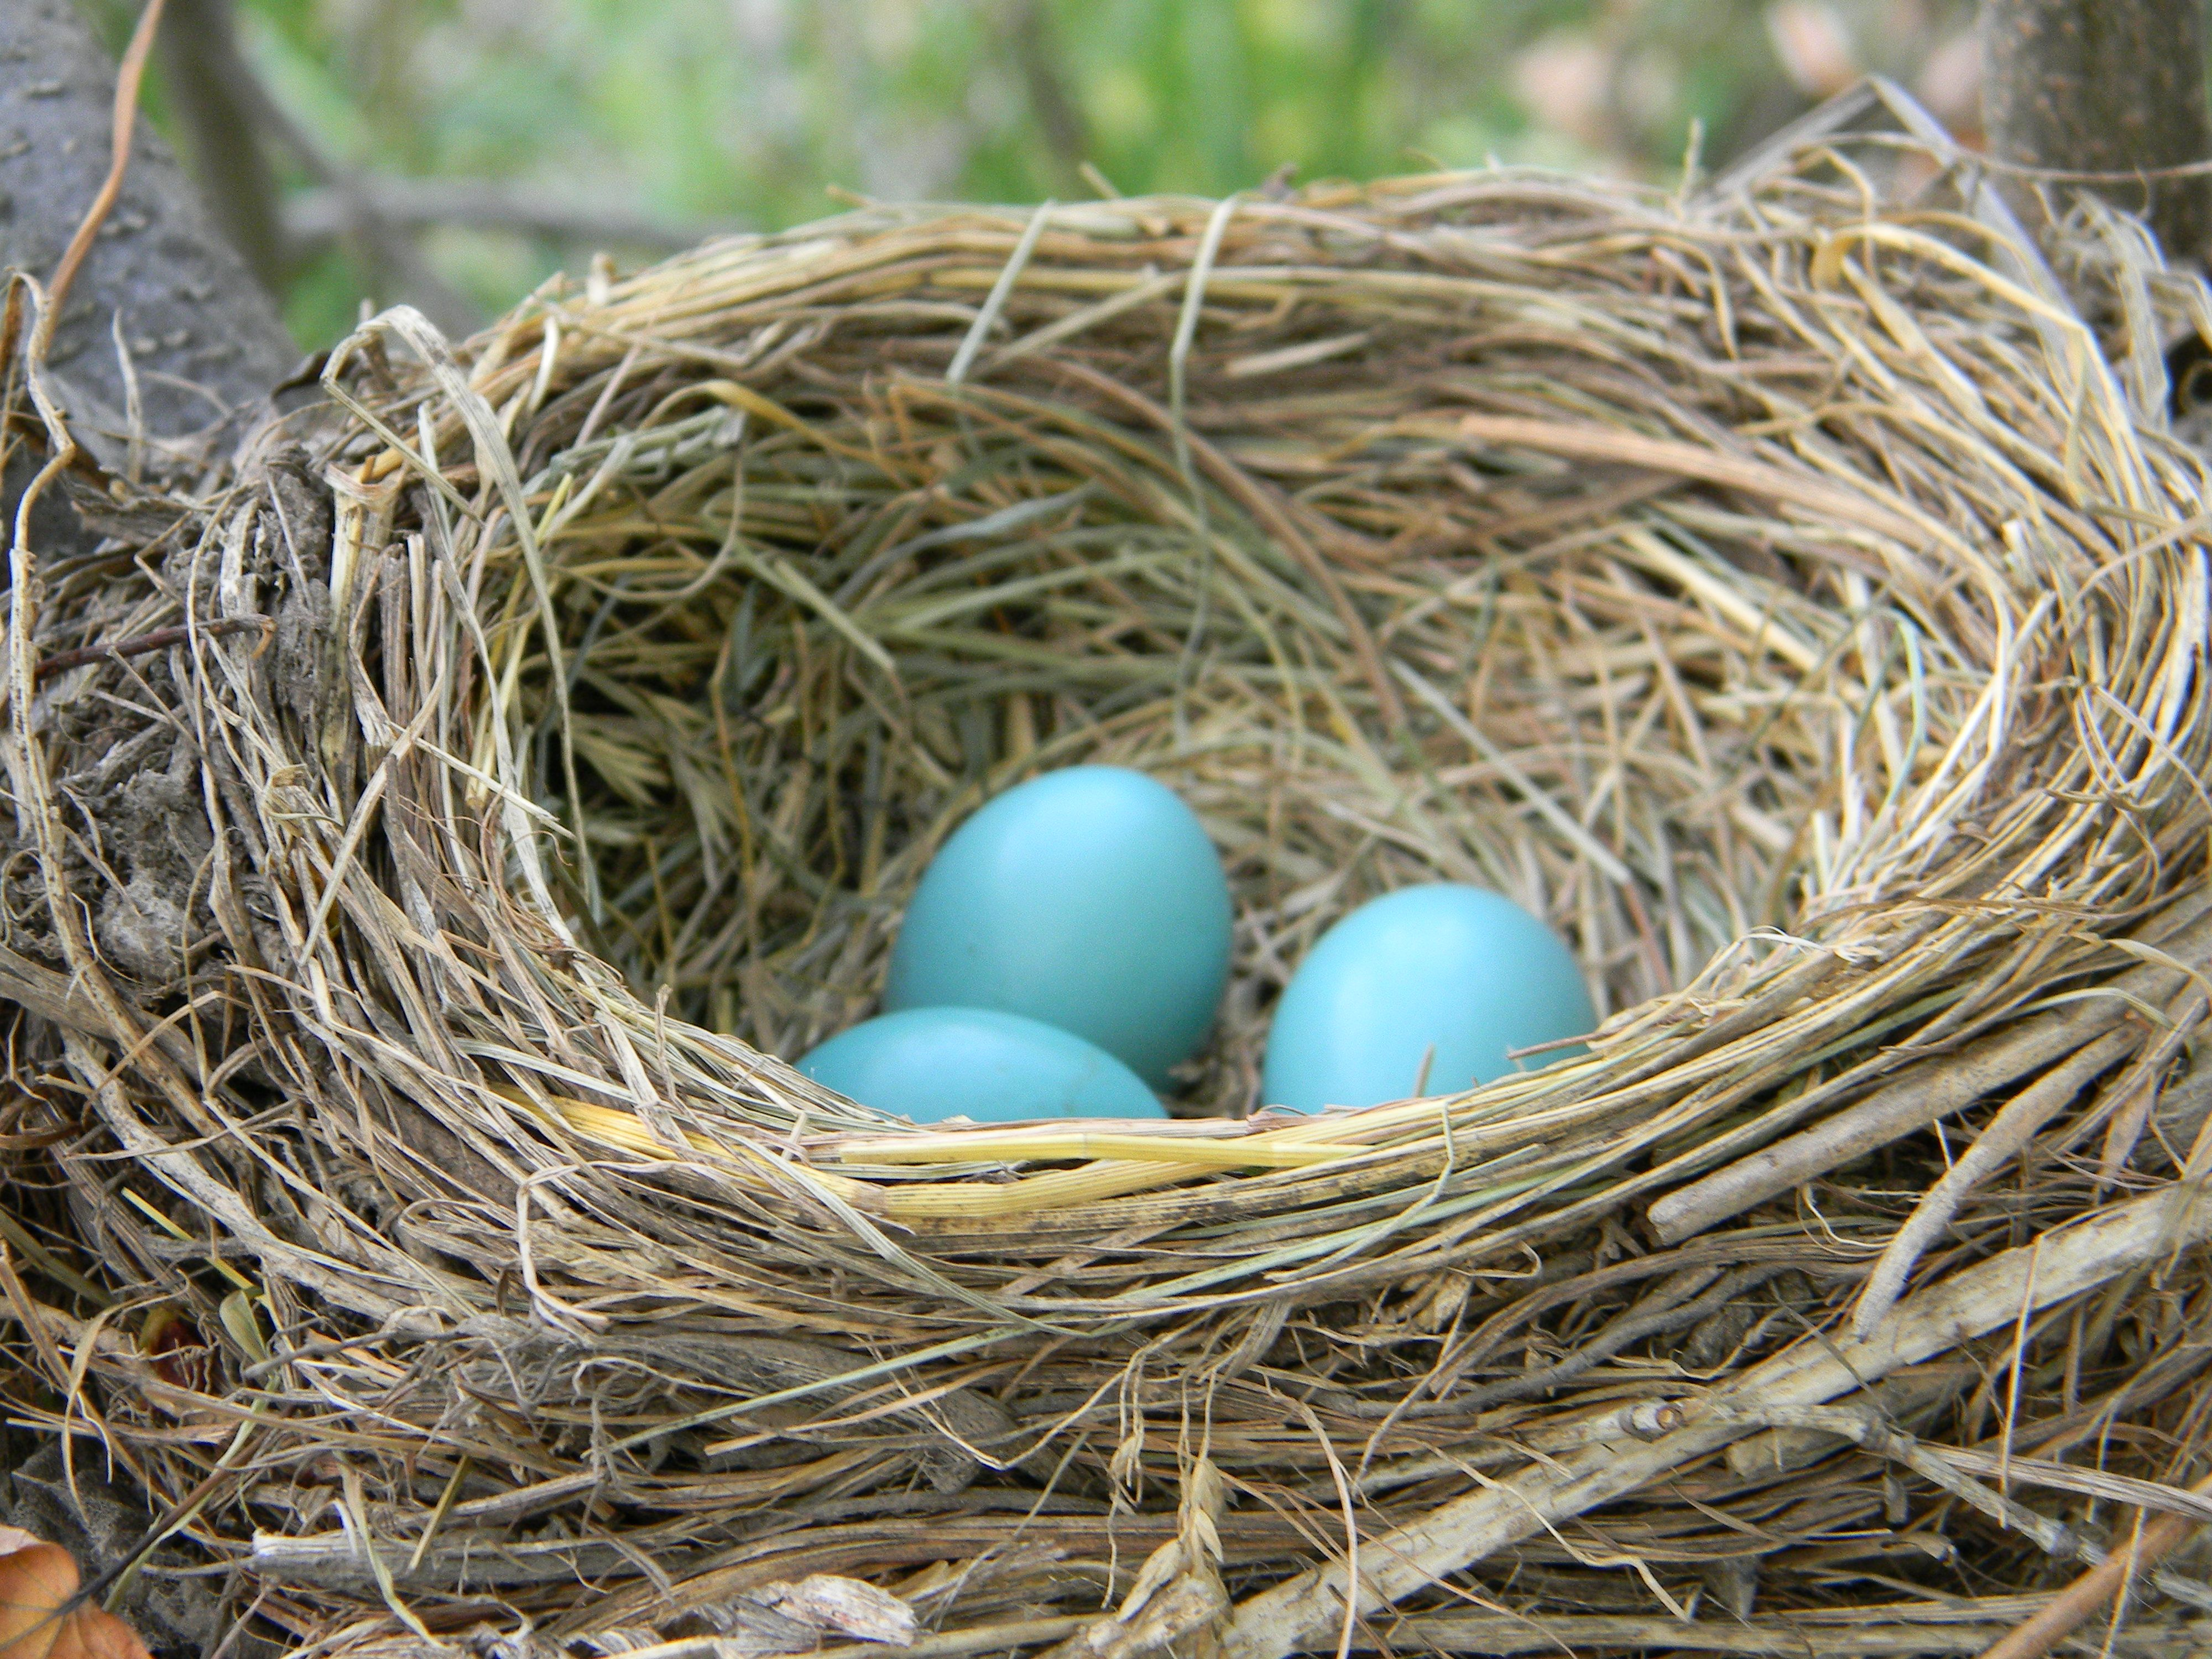 Examples of Nest and Eggs - How Tos